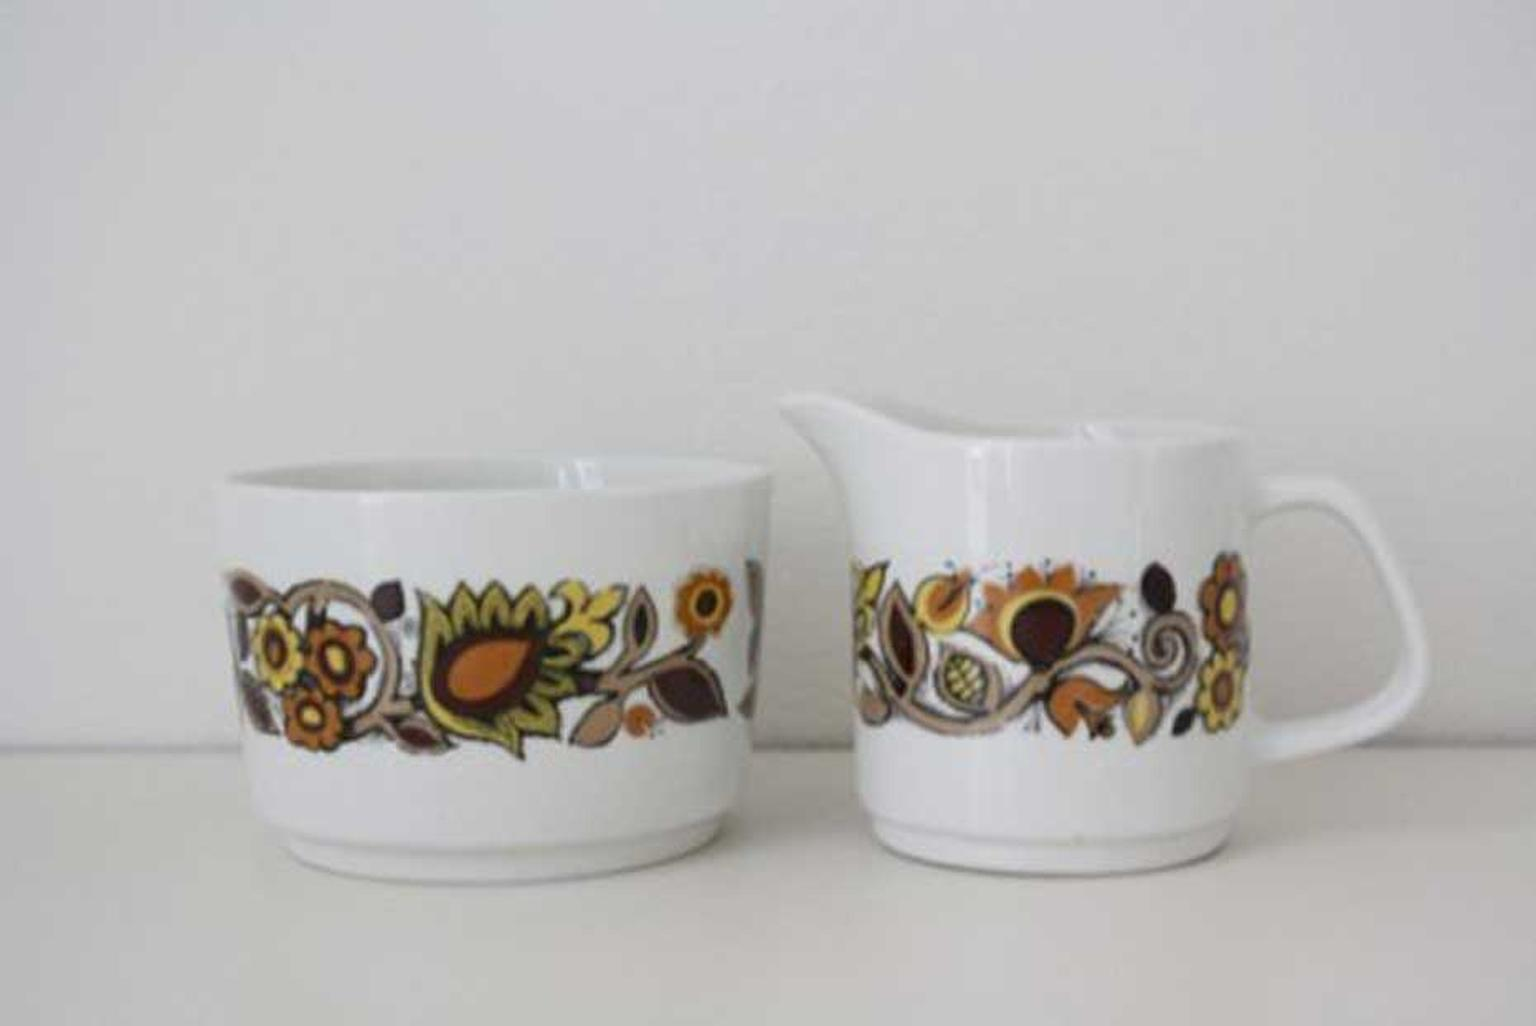 Louis Vuitton jug and sugar bowl set from the 60s Flower collection.